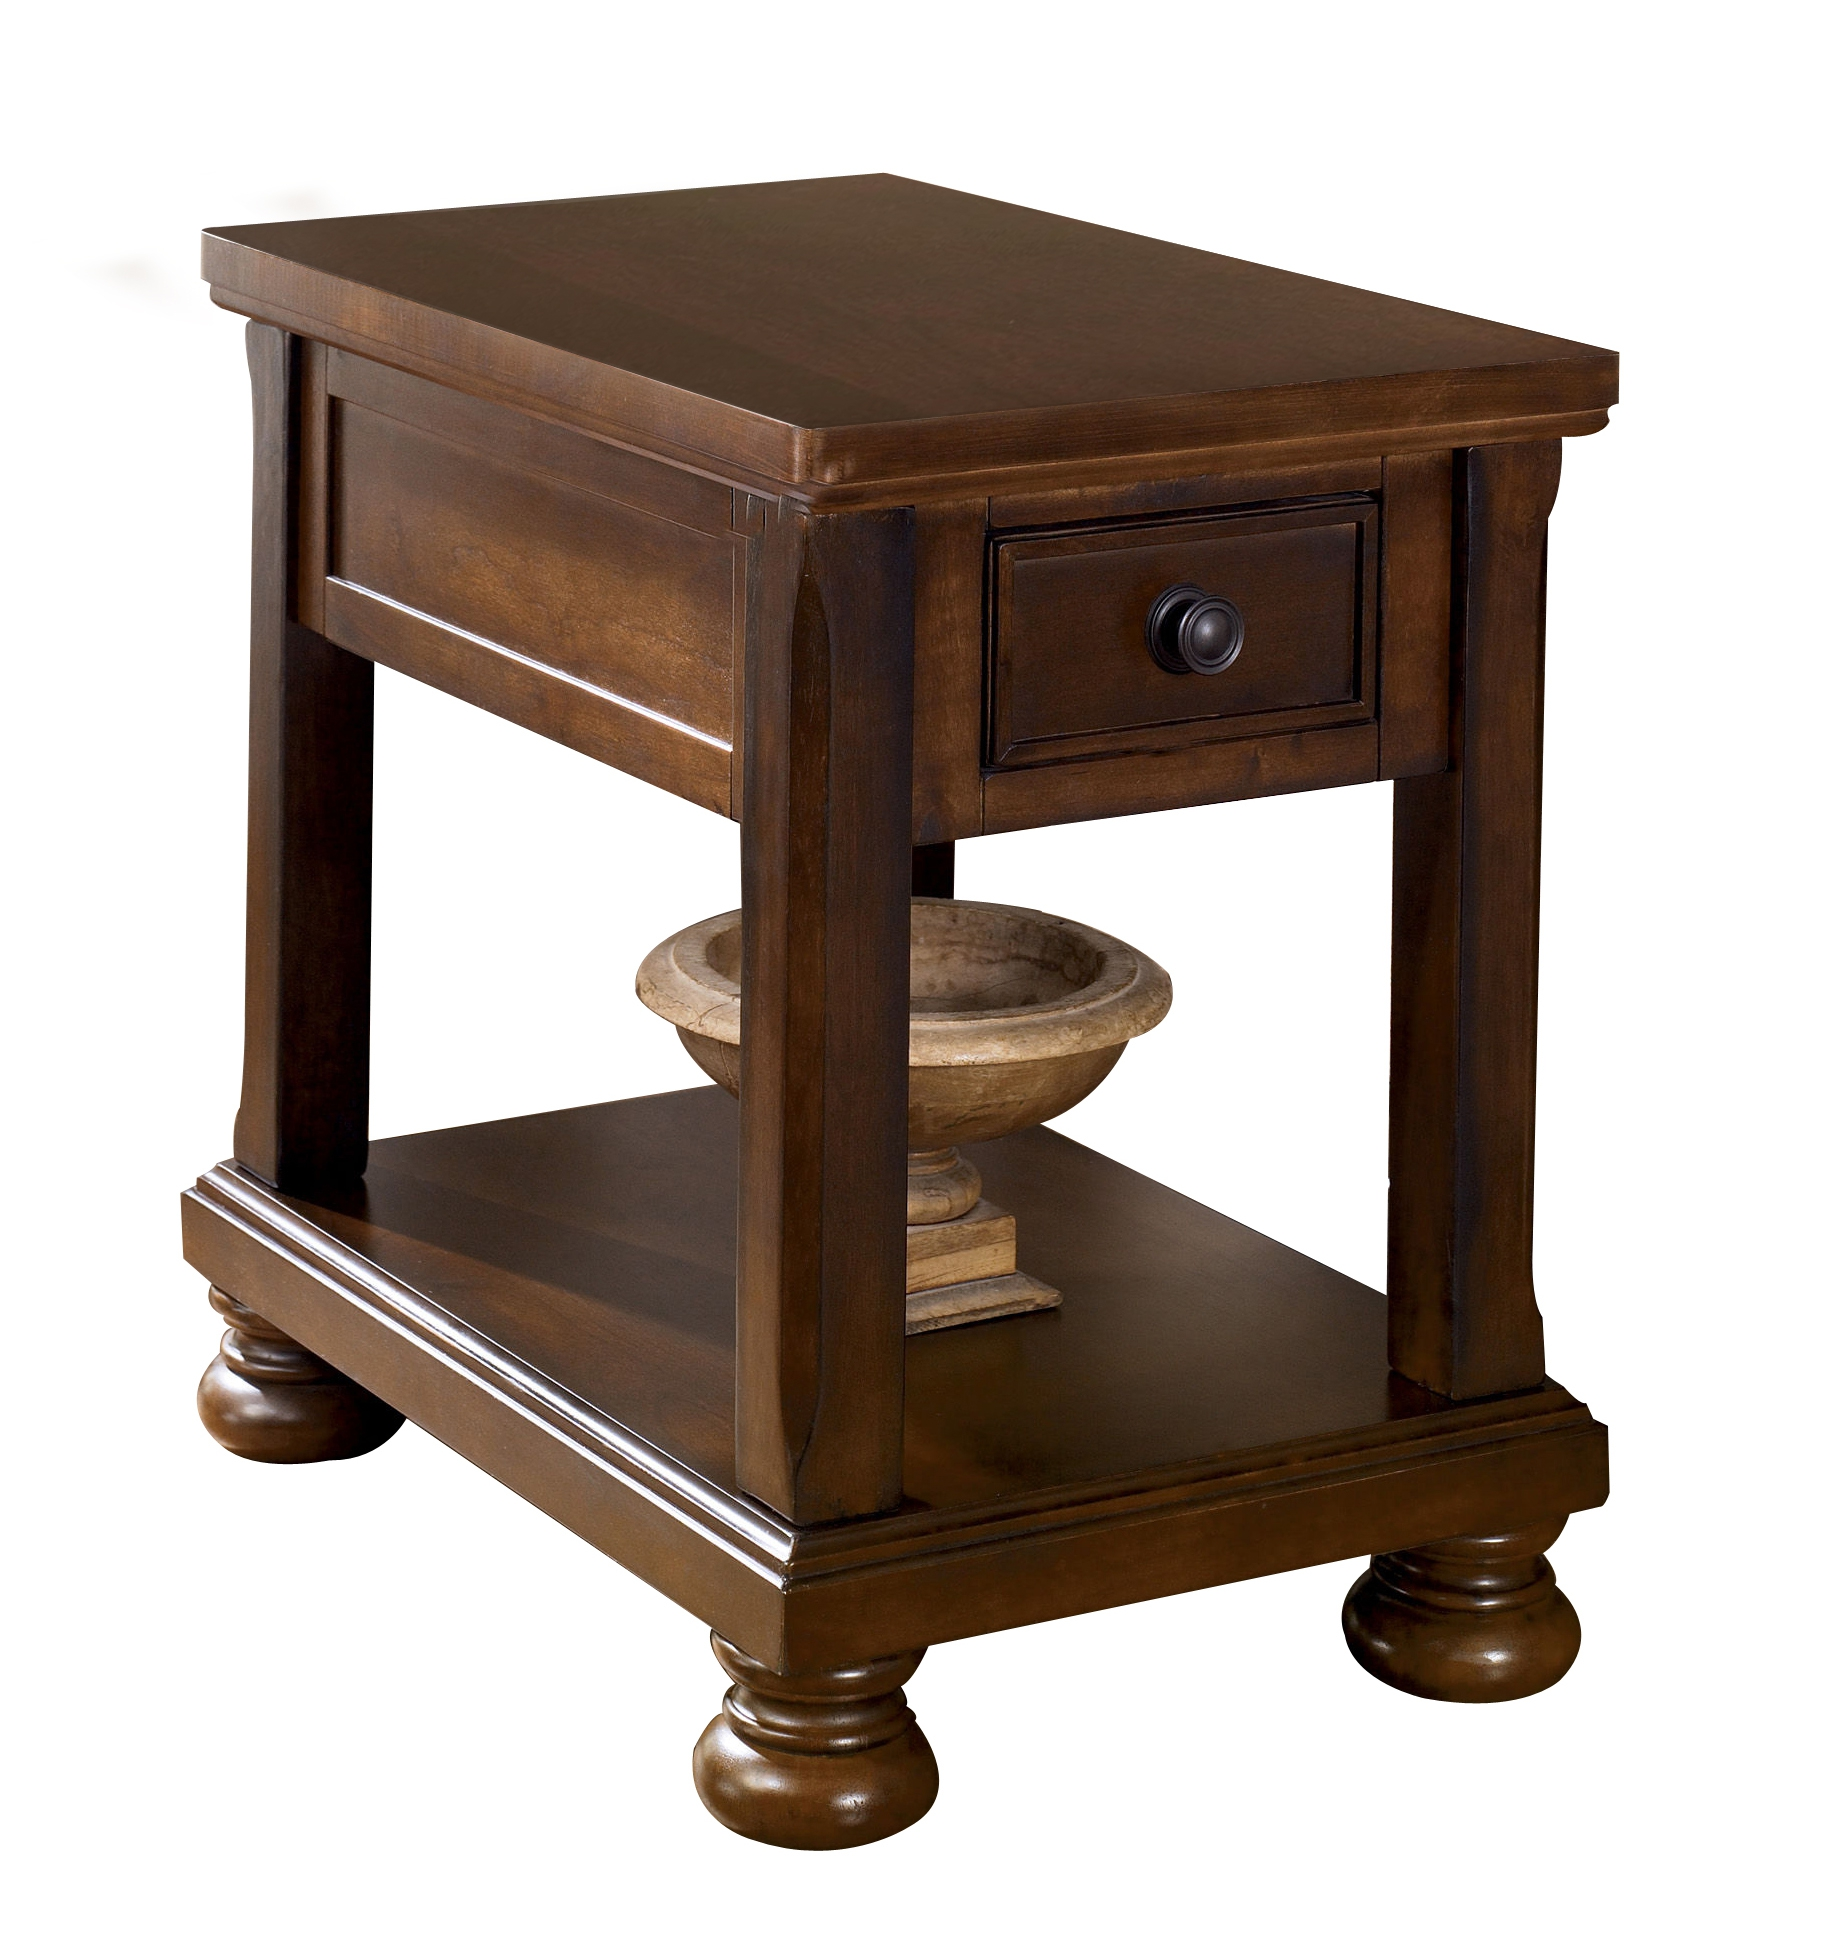 ashley furniture porter brown chair side table the classy home wbg coffee and end tables click enlarge acme allendale glass case rustic entrance anywhere log top mission style